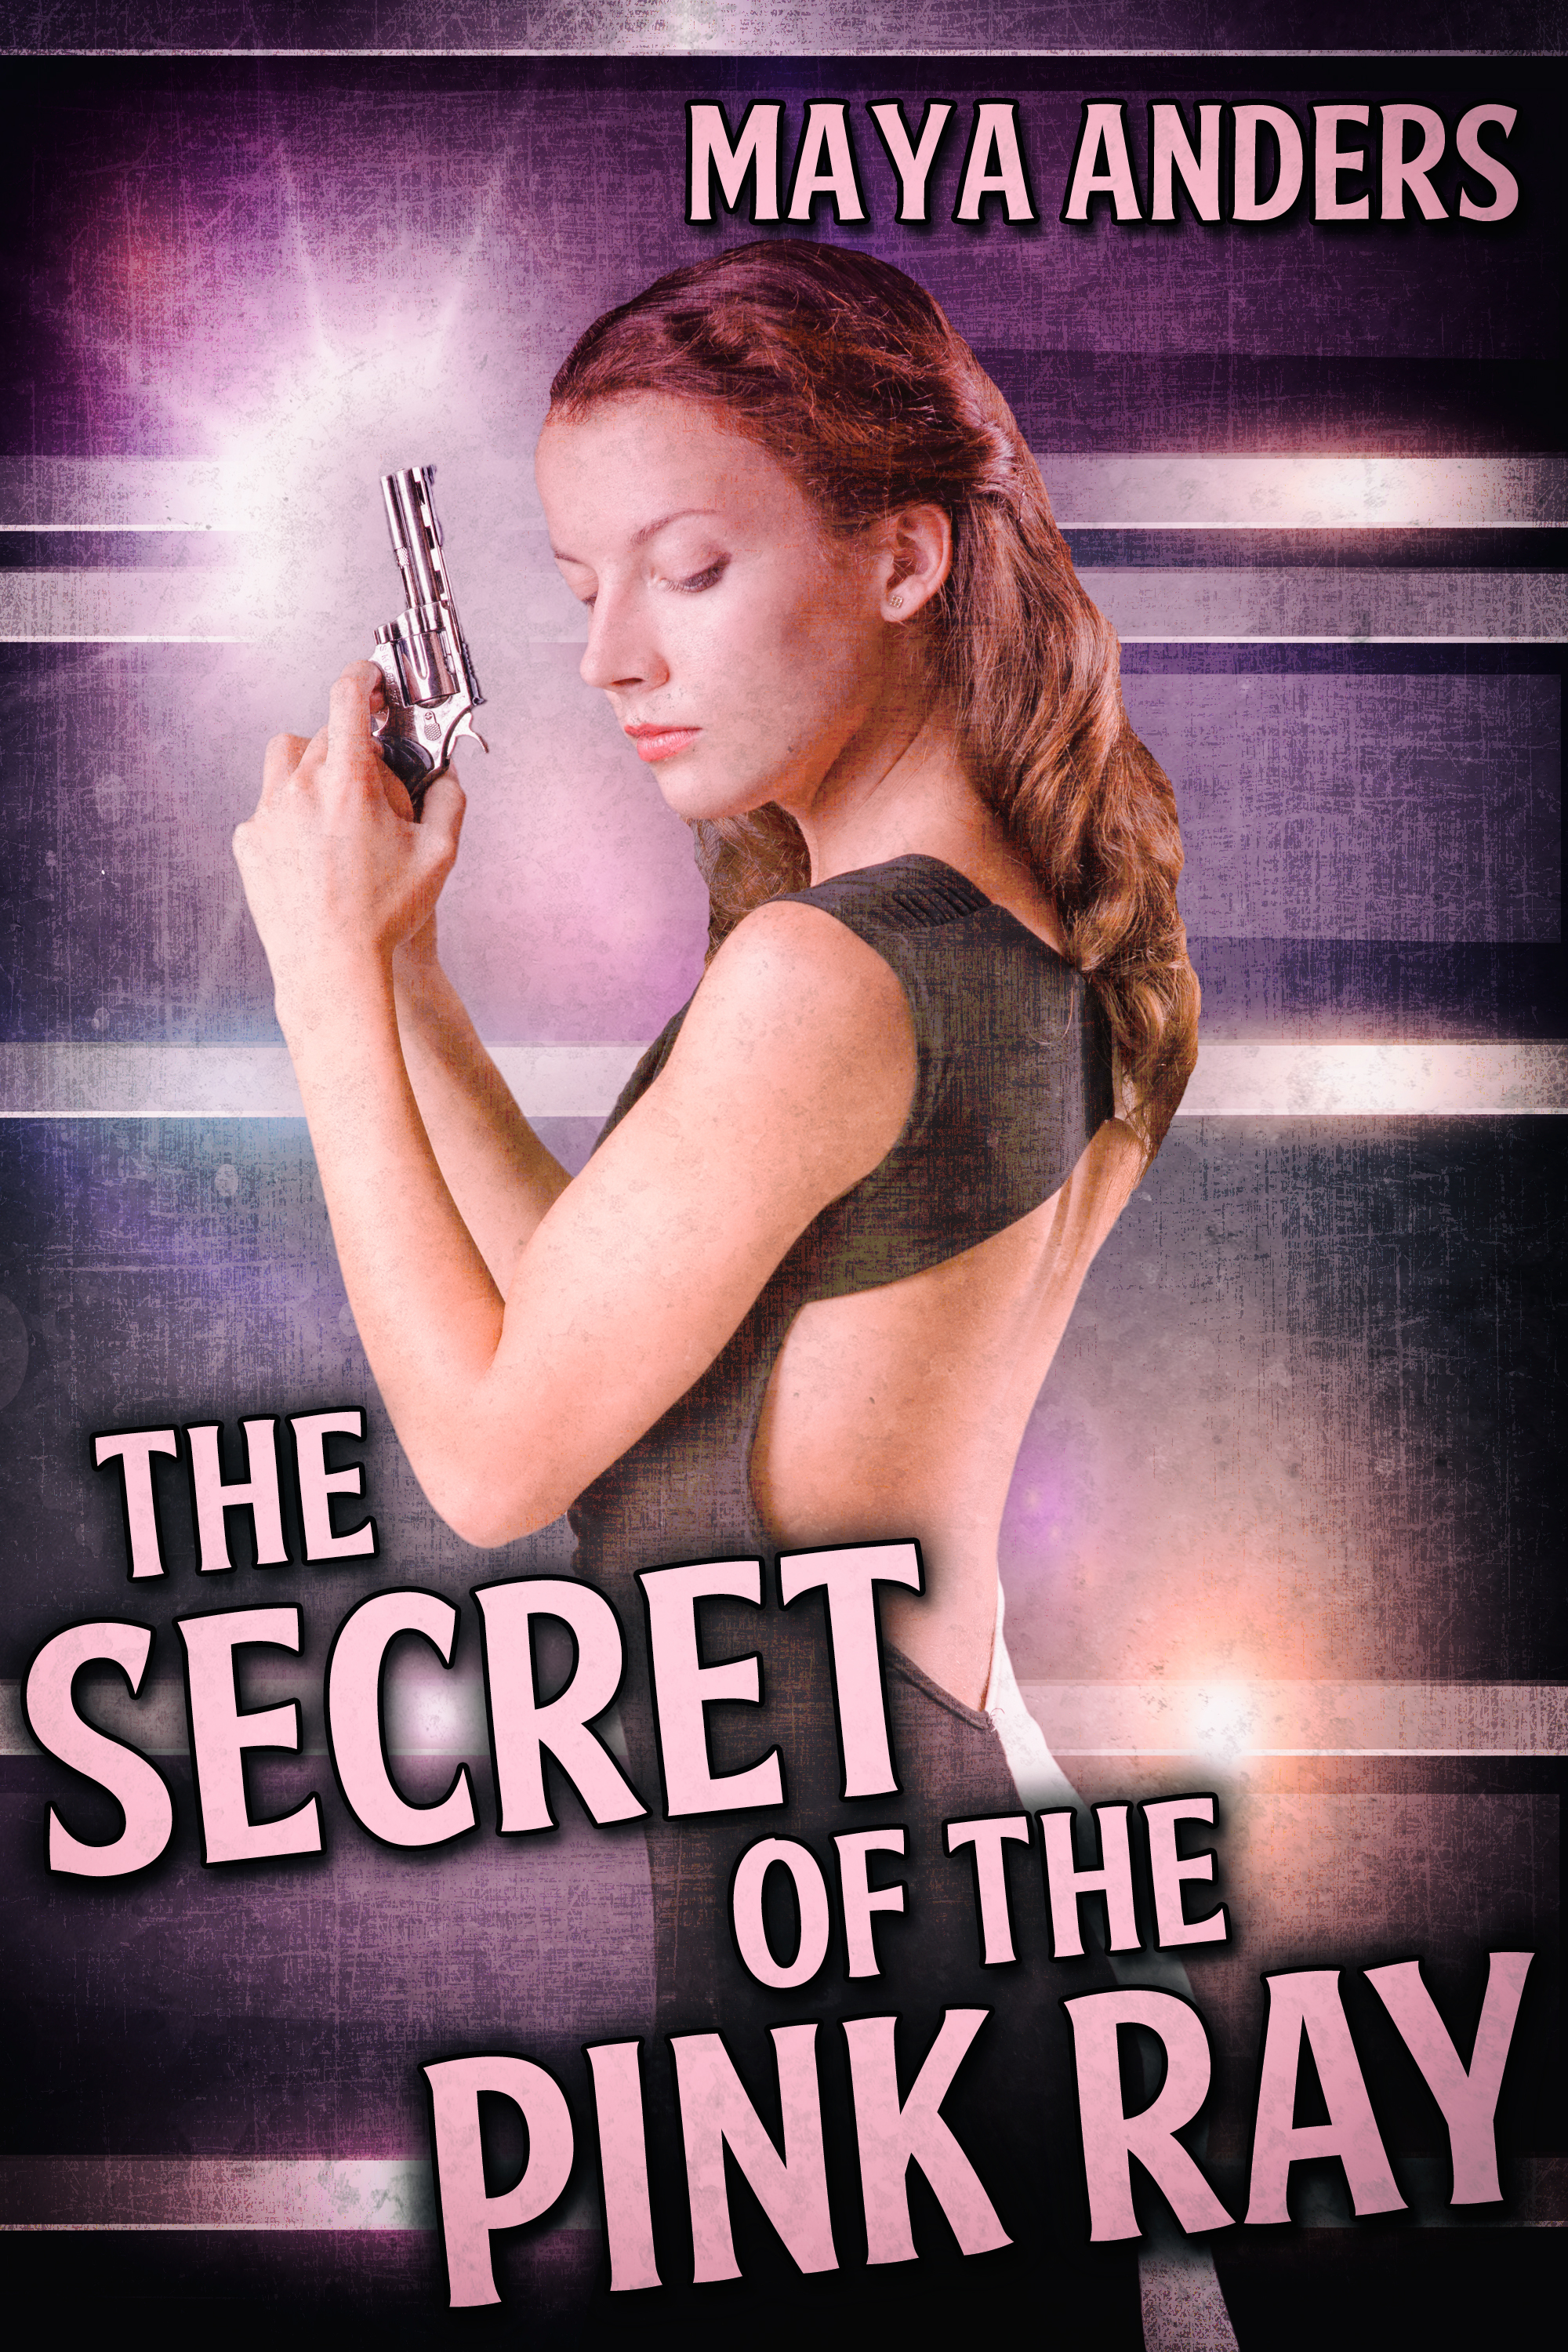 The Secret of the Pink Ray